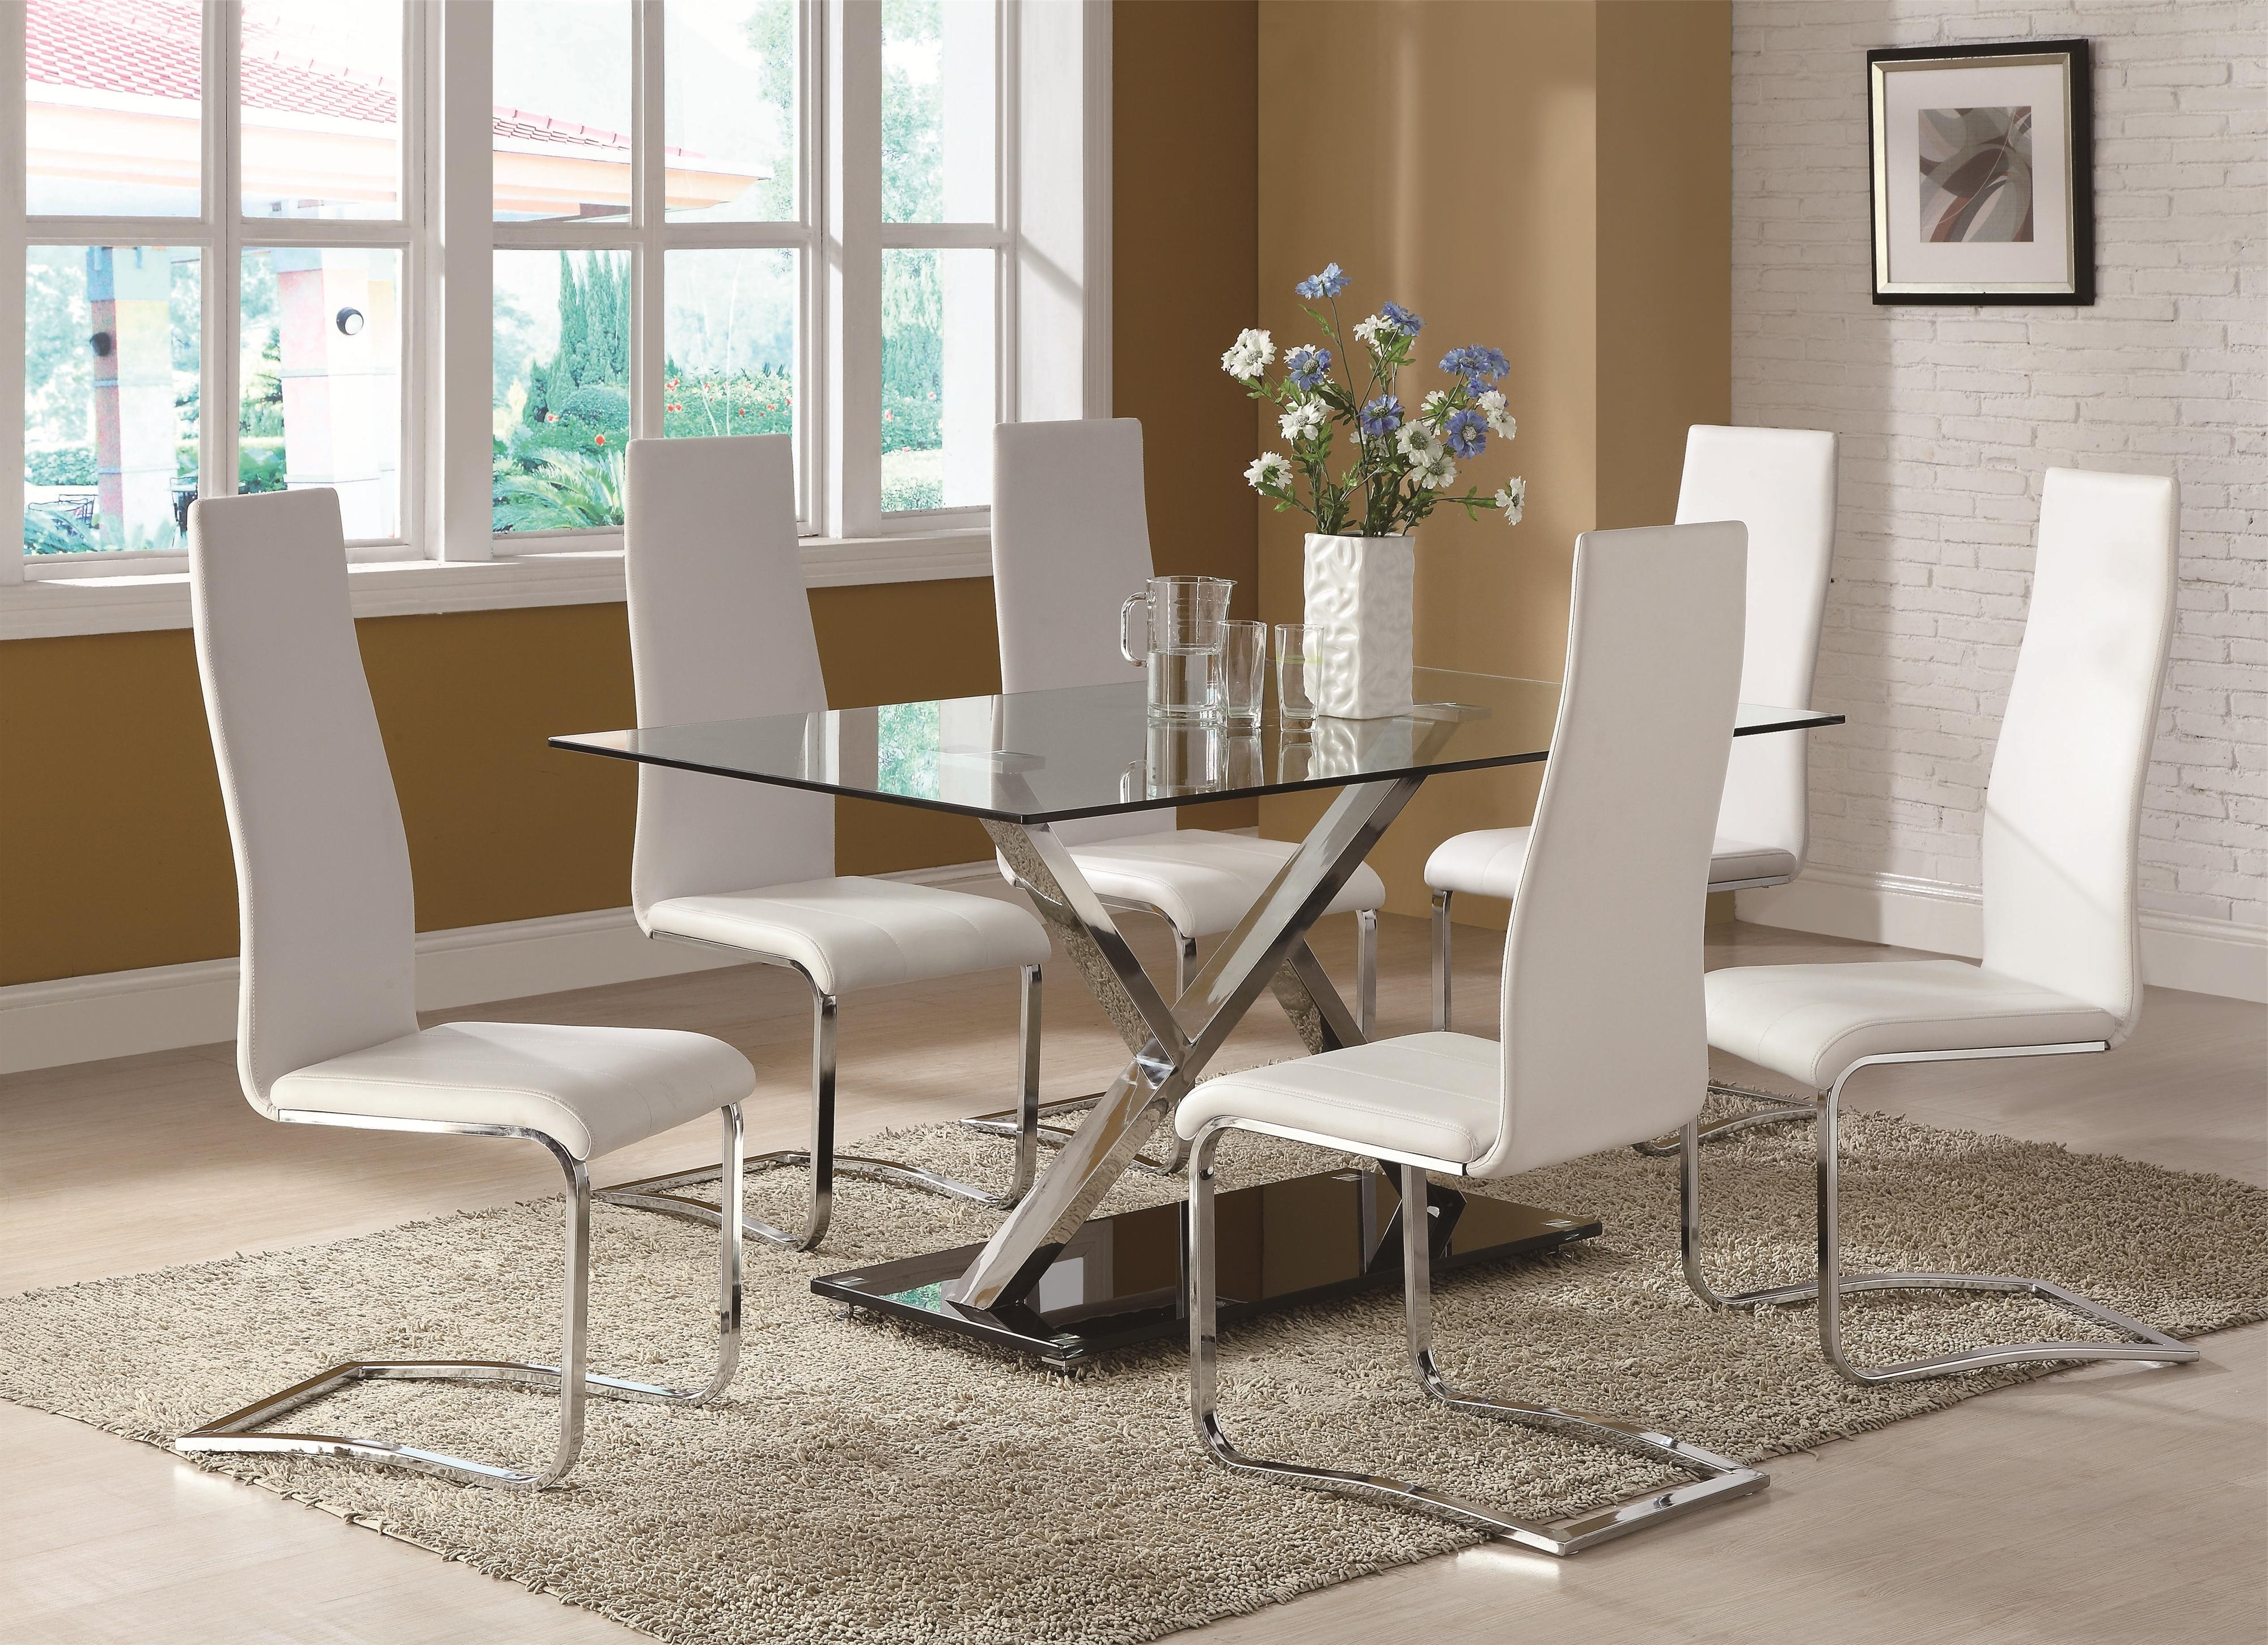 Coaster Modern Dining Contemporary Glass Dining Table With Leaves Pertaining To Newest Glass Dining Tables White Chairs (Gallery 16 of 25)